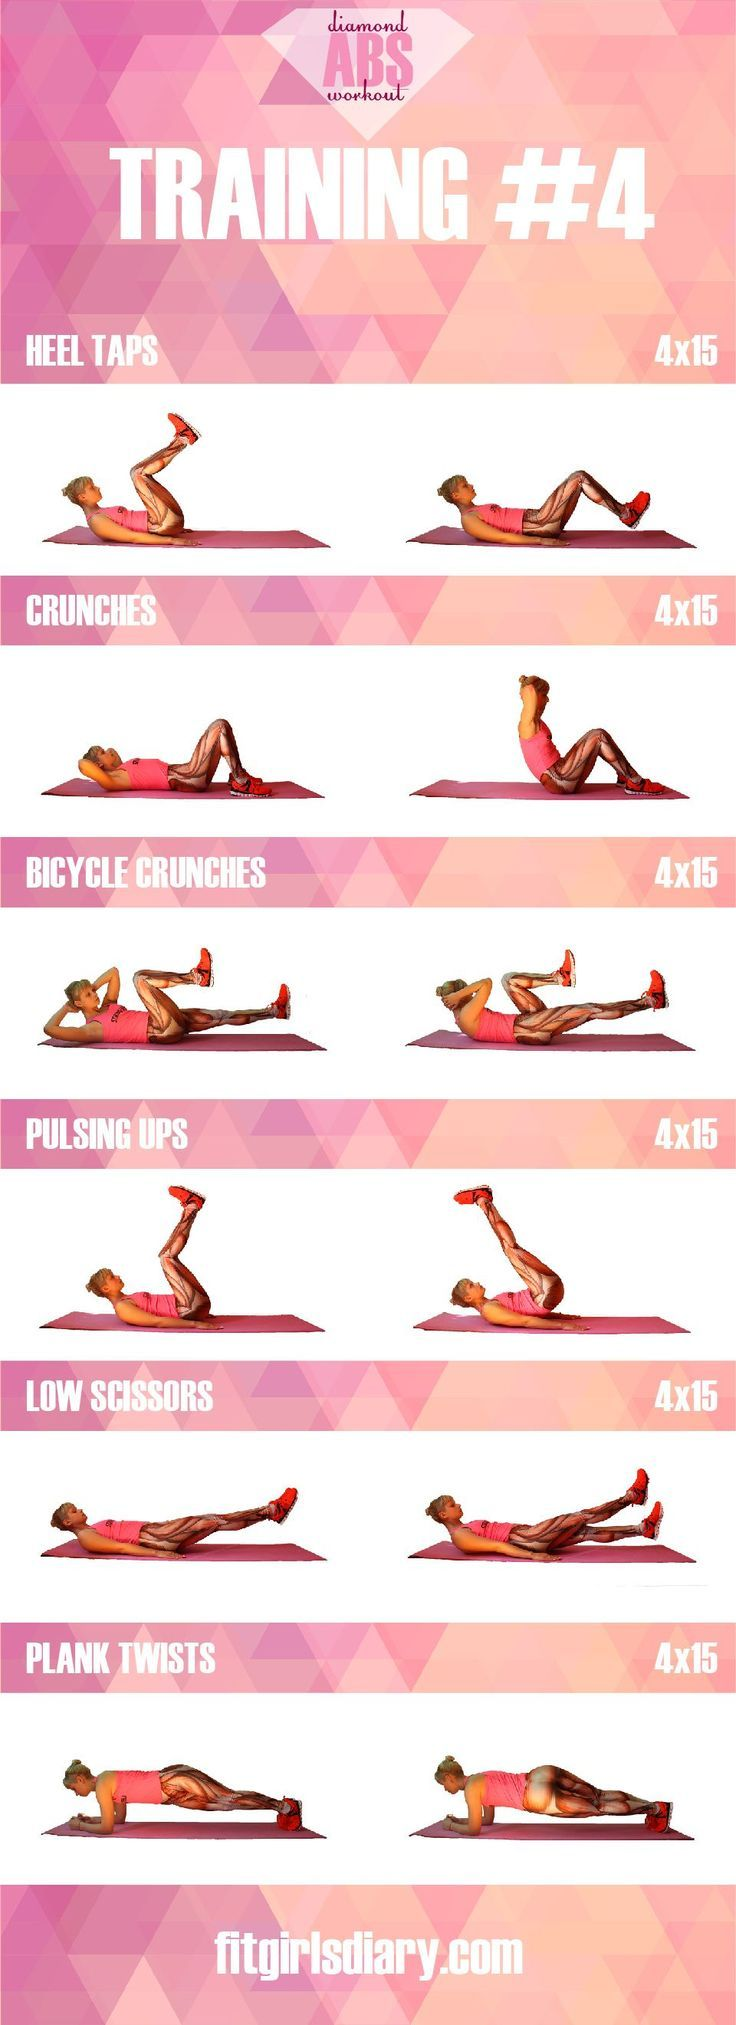 Diamond Abs Workout The Best Ab Exercises For Women In 2020 Abs Workout Abs Workout For Women Best Abs